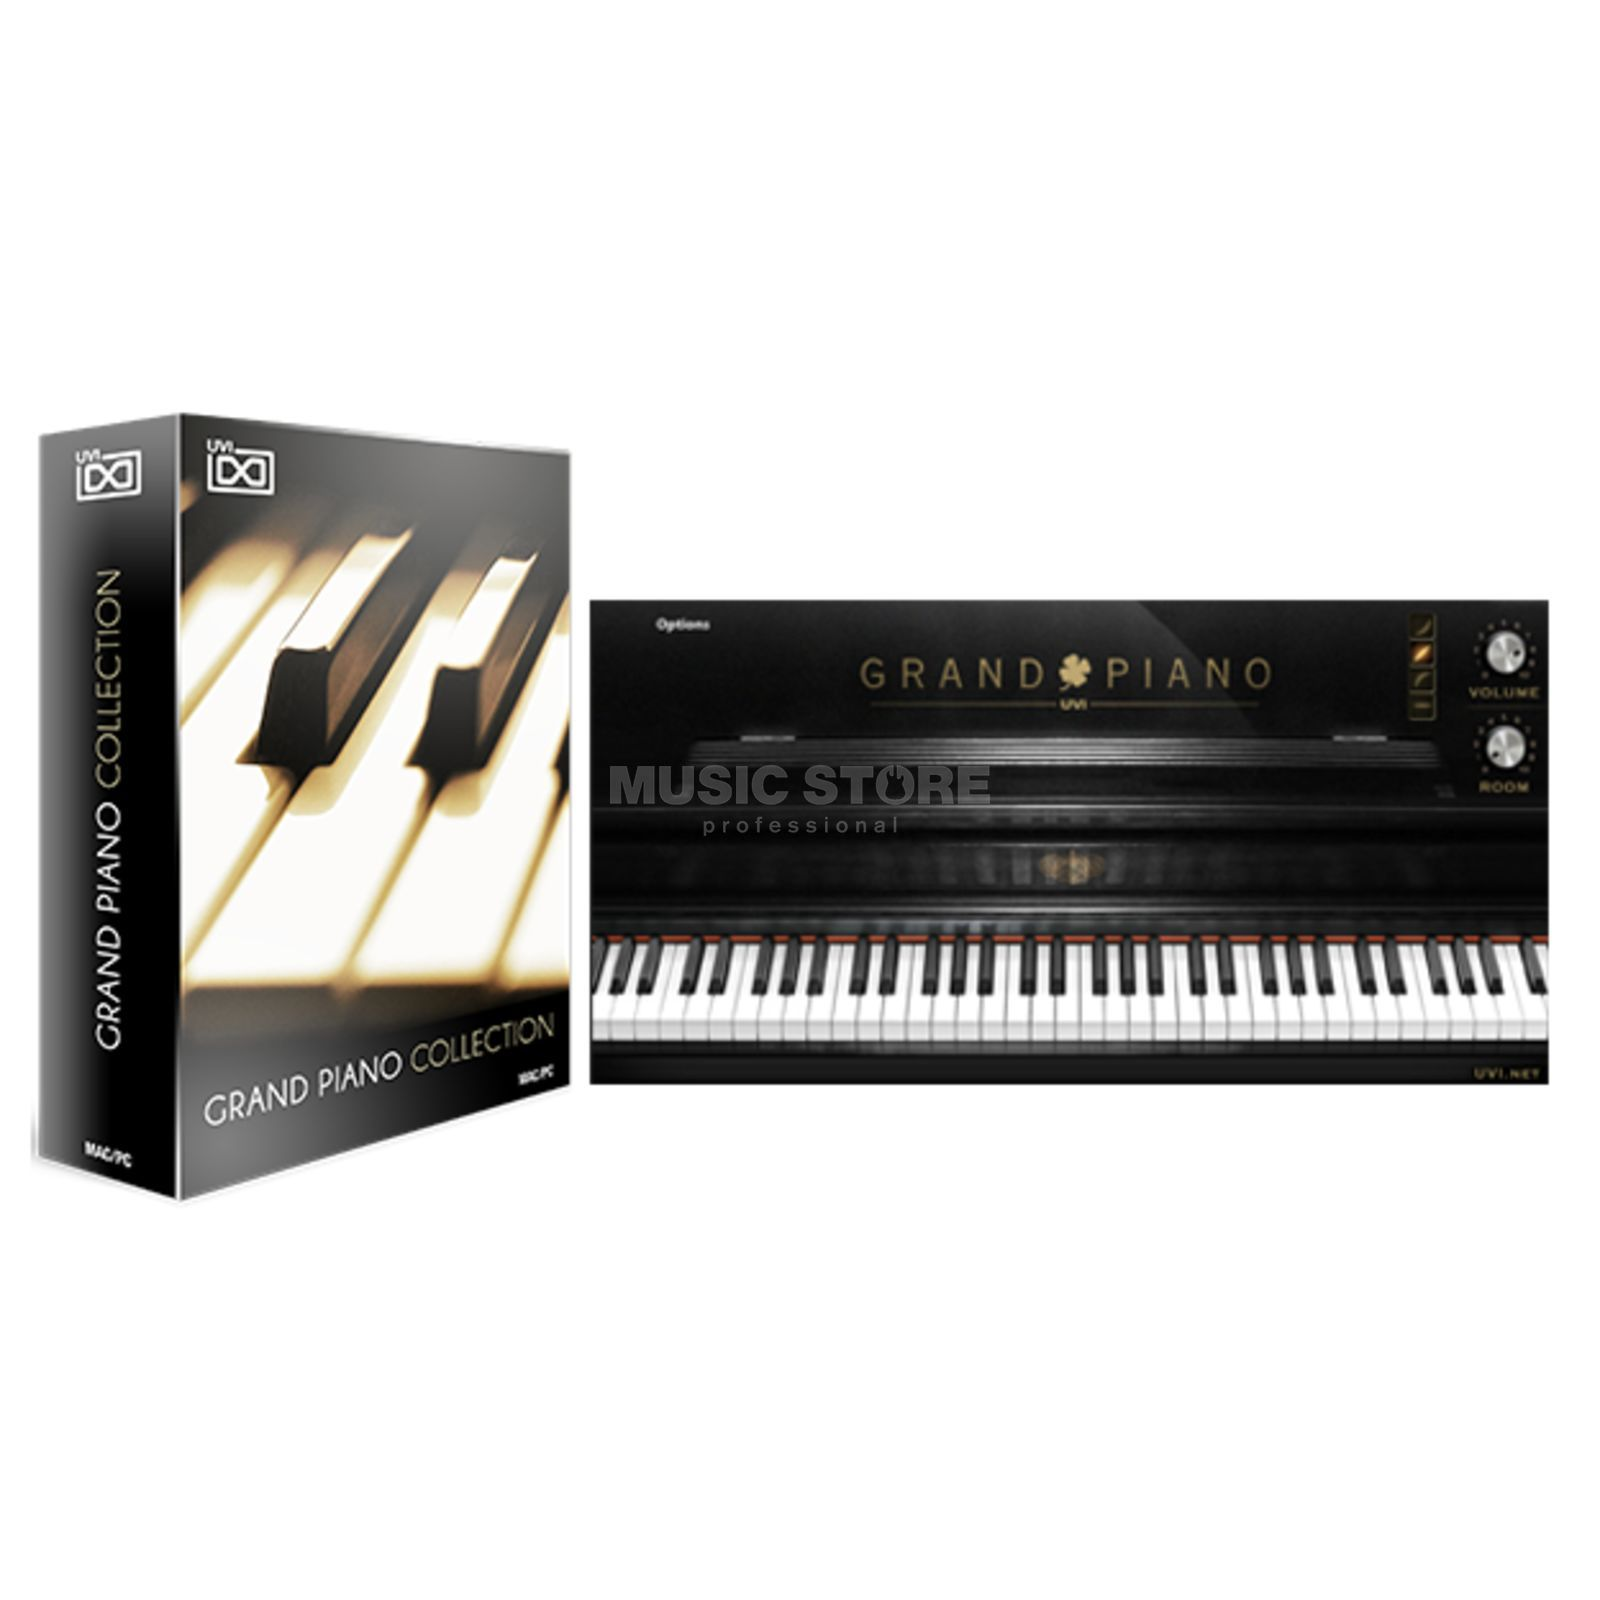 UVI F Grand Piano 278 (CODE) Einzelstück B-Stock Product Image